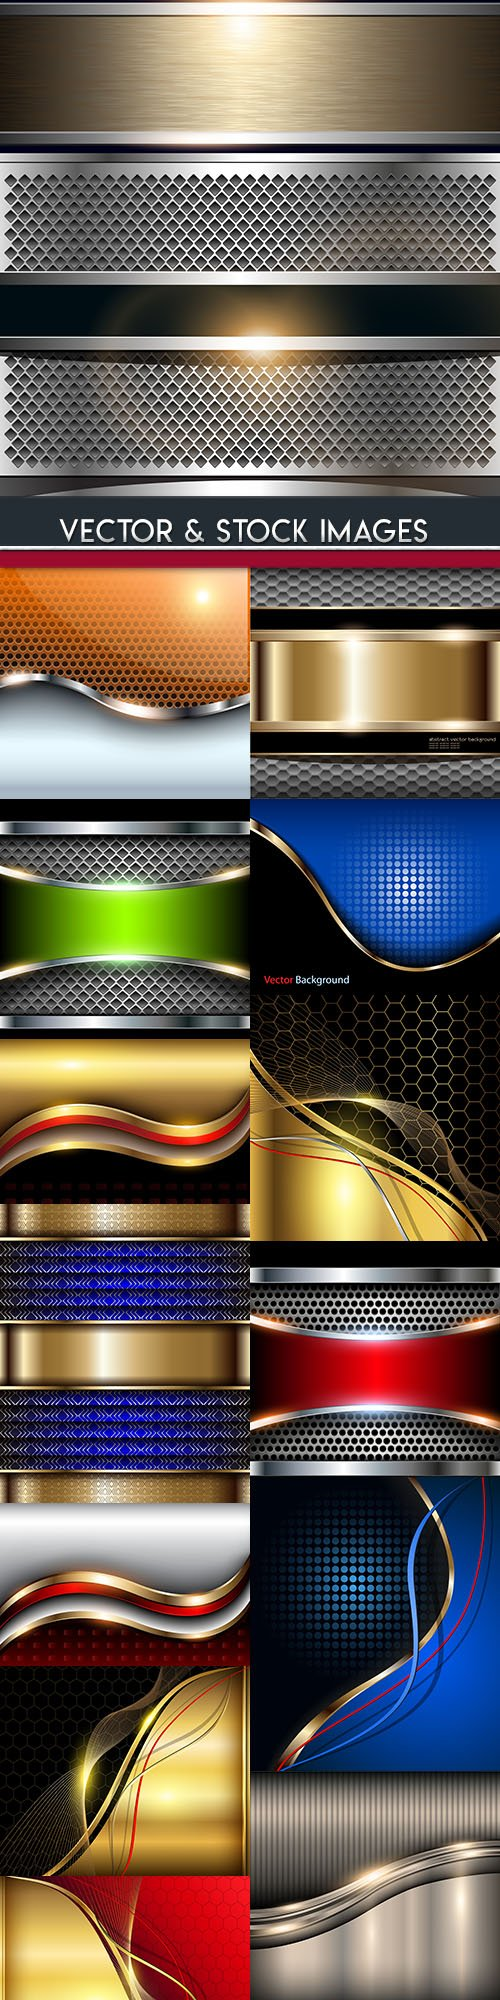 Elegant metallic and gold lines abstract background